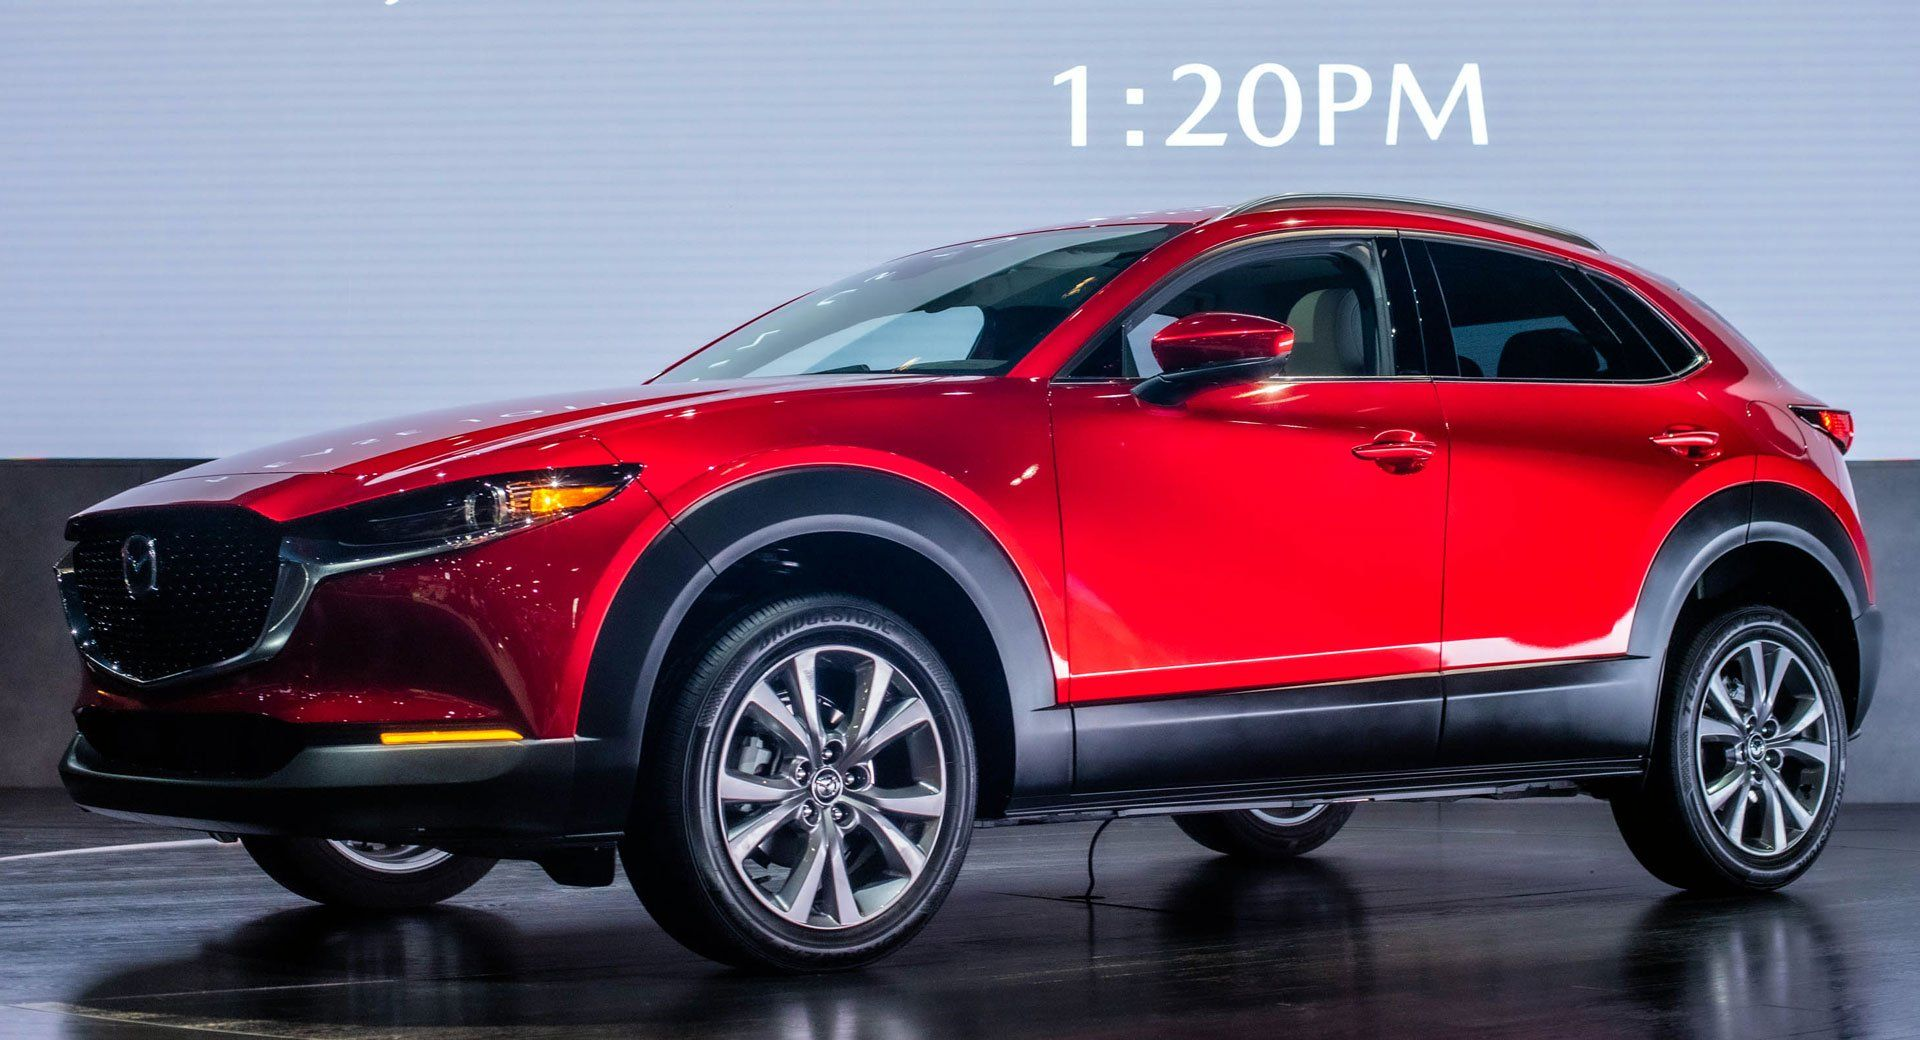 2020 Mazda Cx 30 Comes To America With 186 Hp From 21 900 New Photos Laautoshow Mazda Mazdacx 30 Newcars Suv Cars Carsofinstagram Mazda Suv New Cars